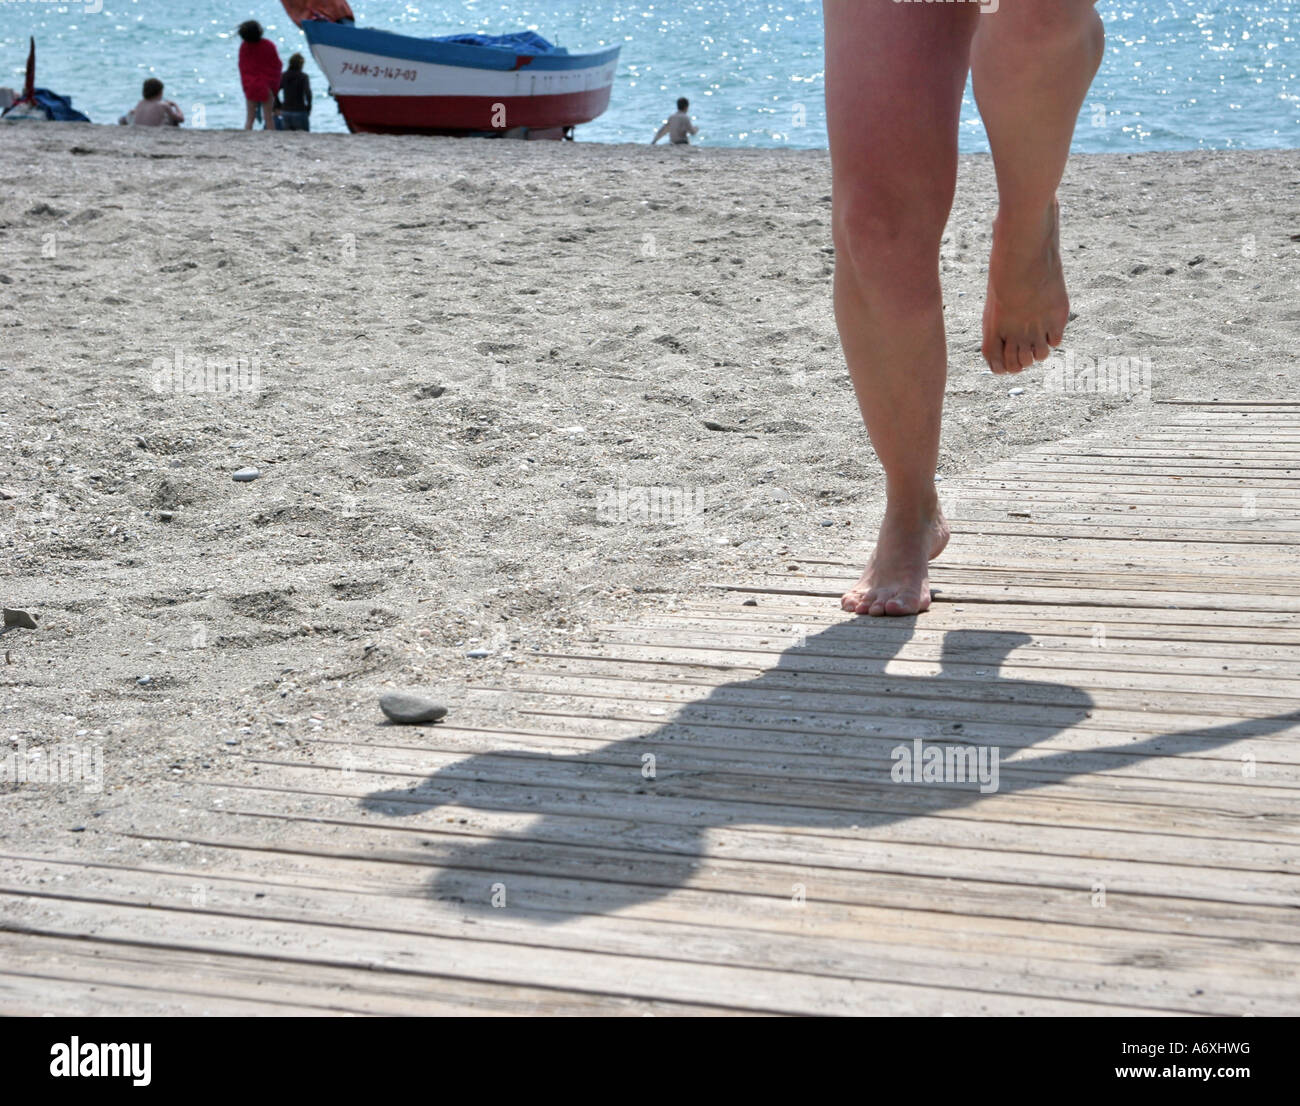 woman tip-toeing on hot boardwalk - Stock Image